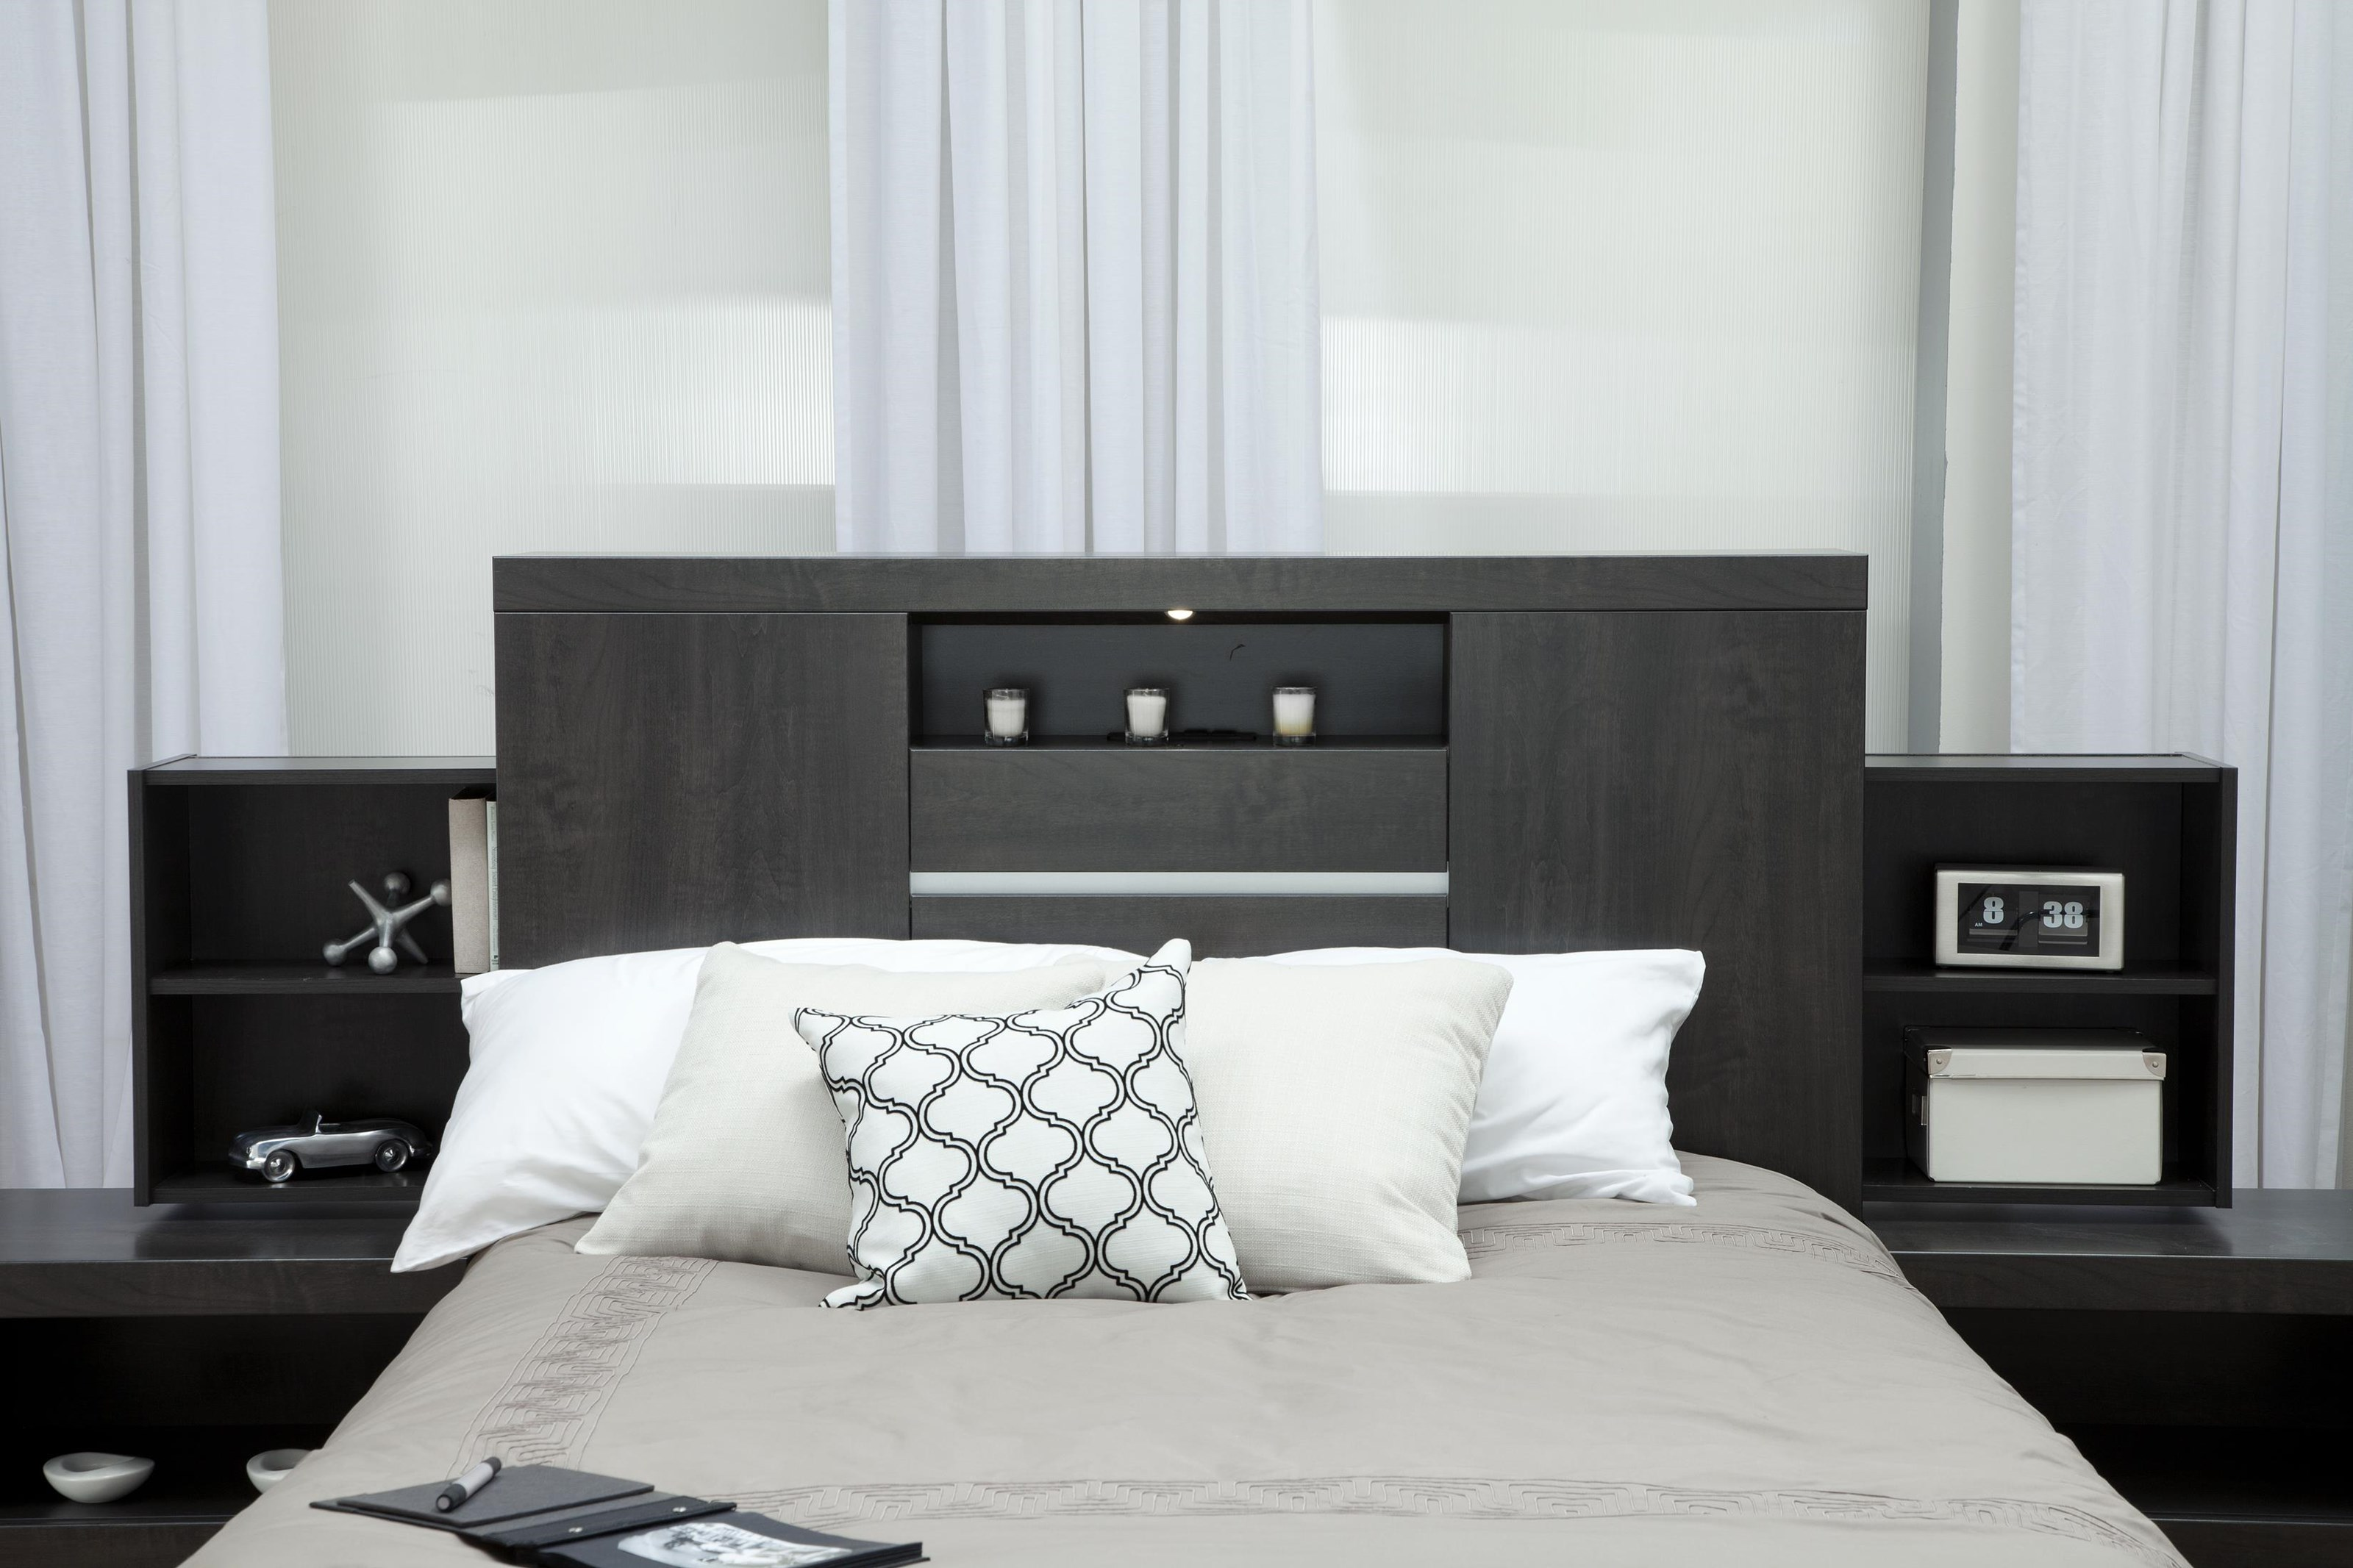 534 Captain twin bed by Defehr at Stoney Creek Furniture